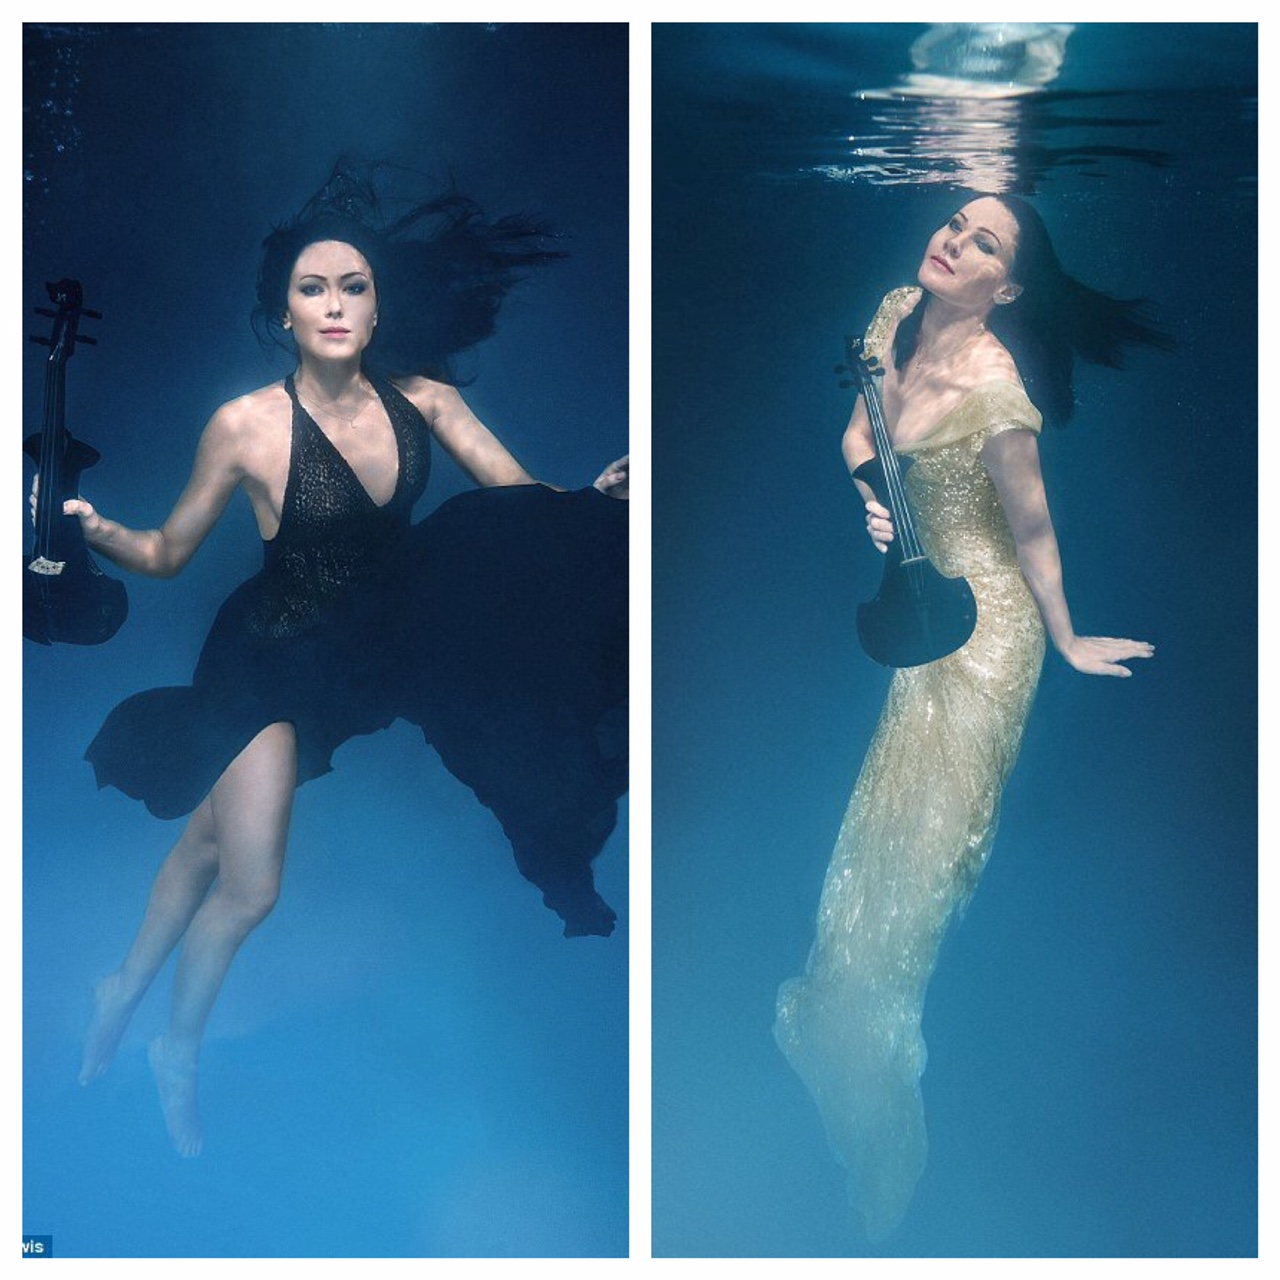 Linzi Stoppard FUSE Violinist Underwater Photo Shoot